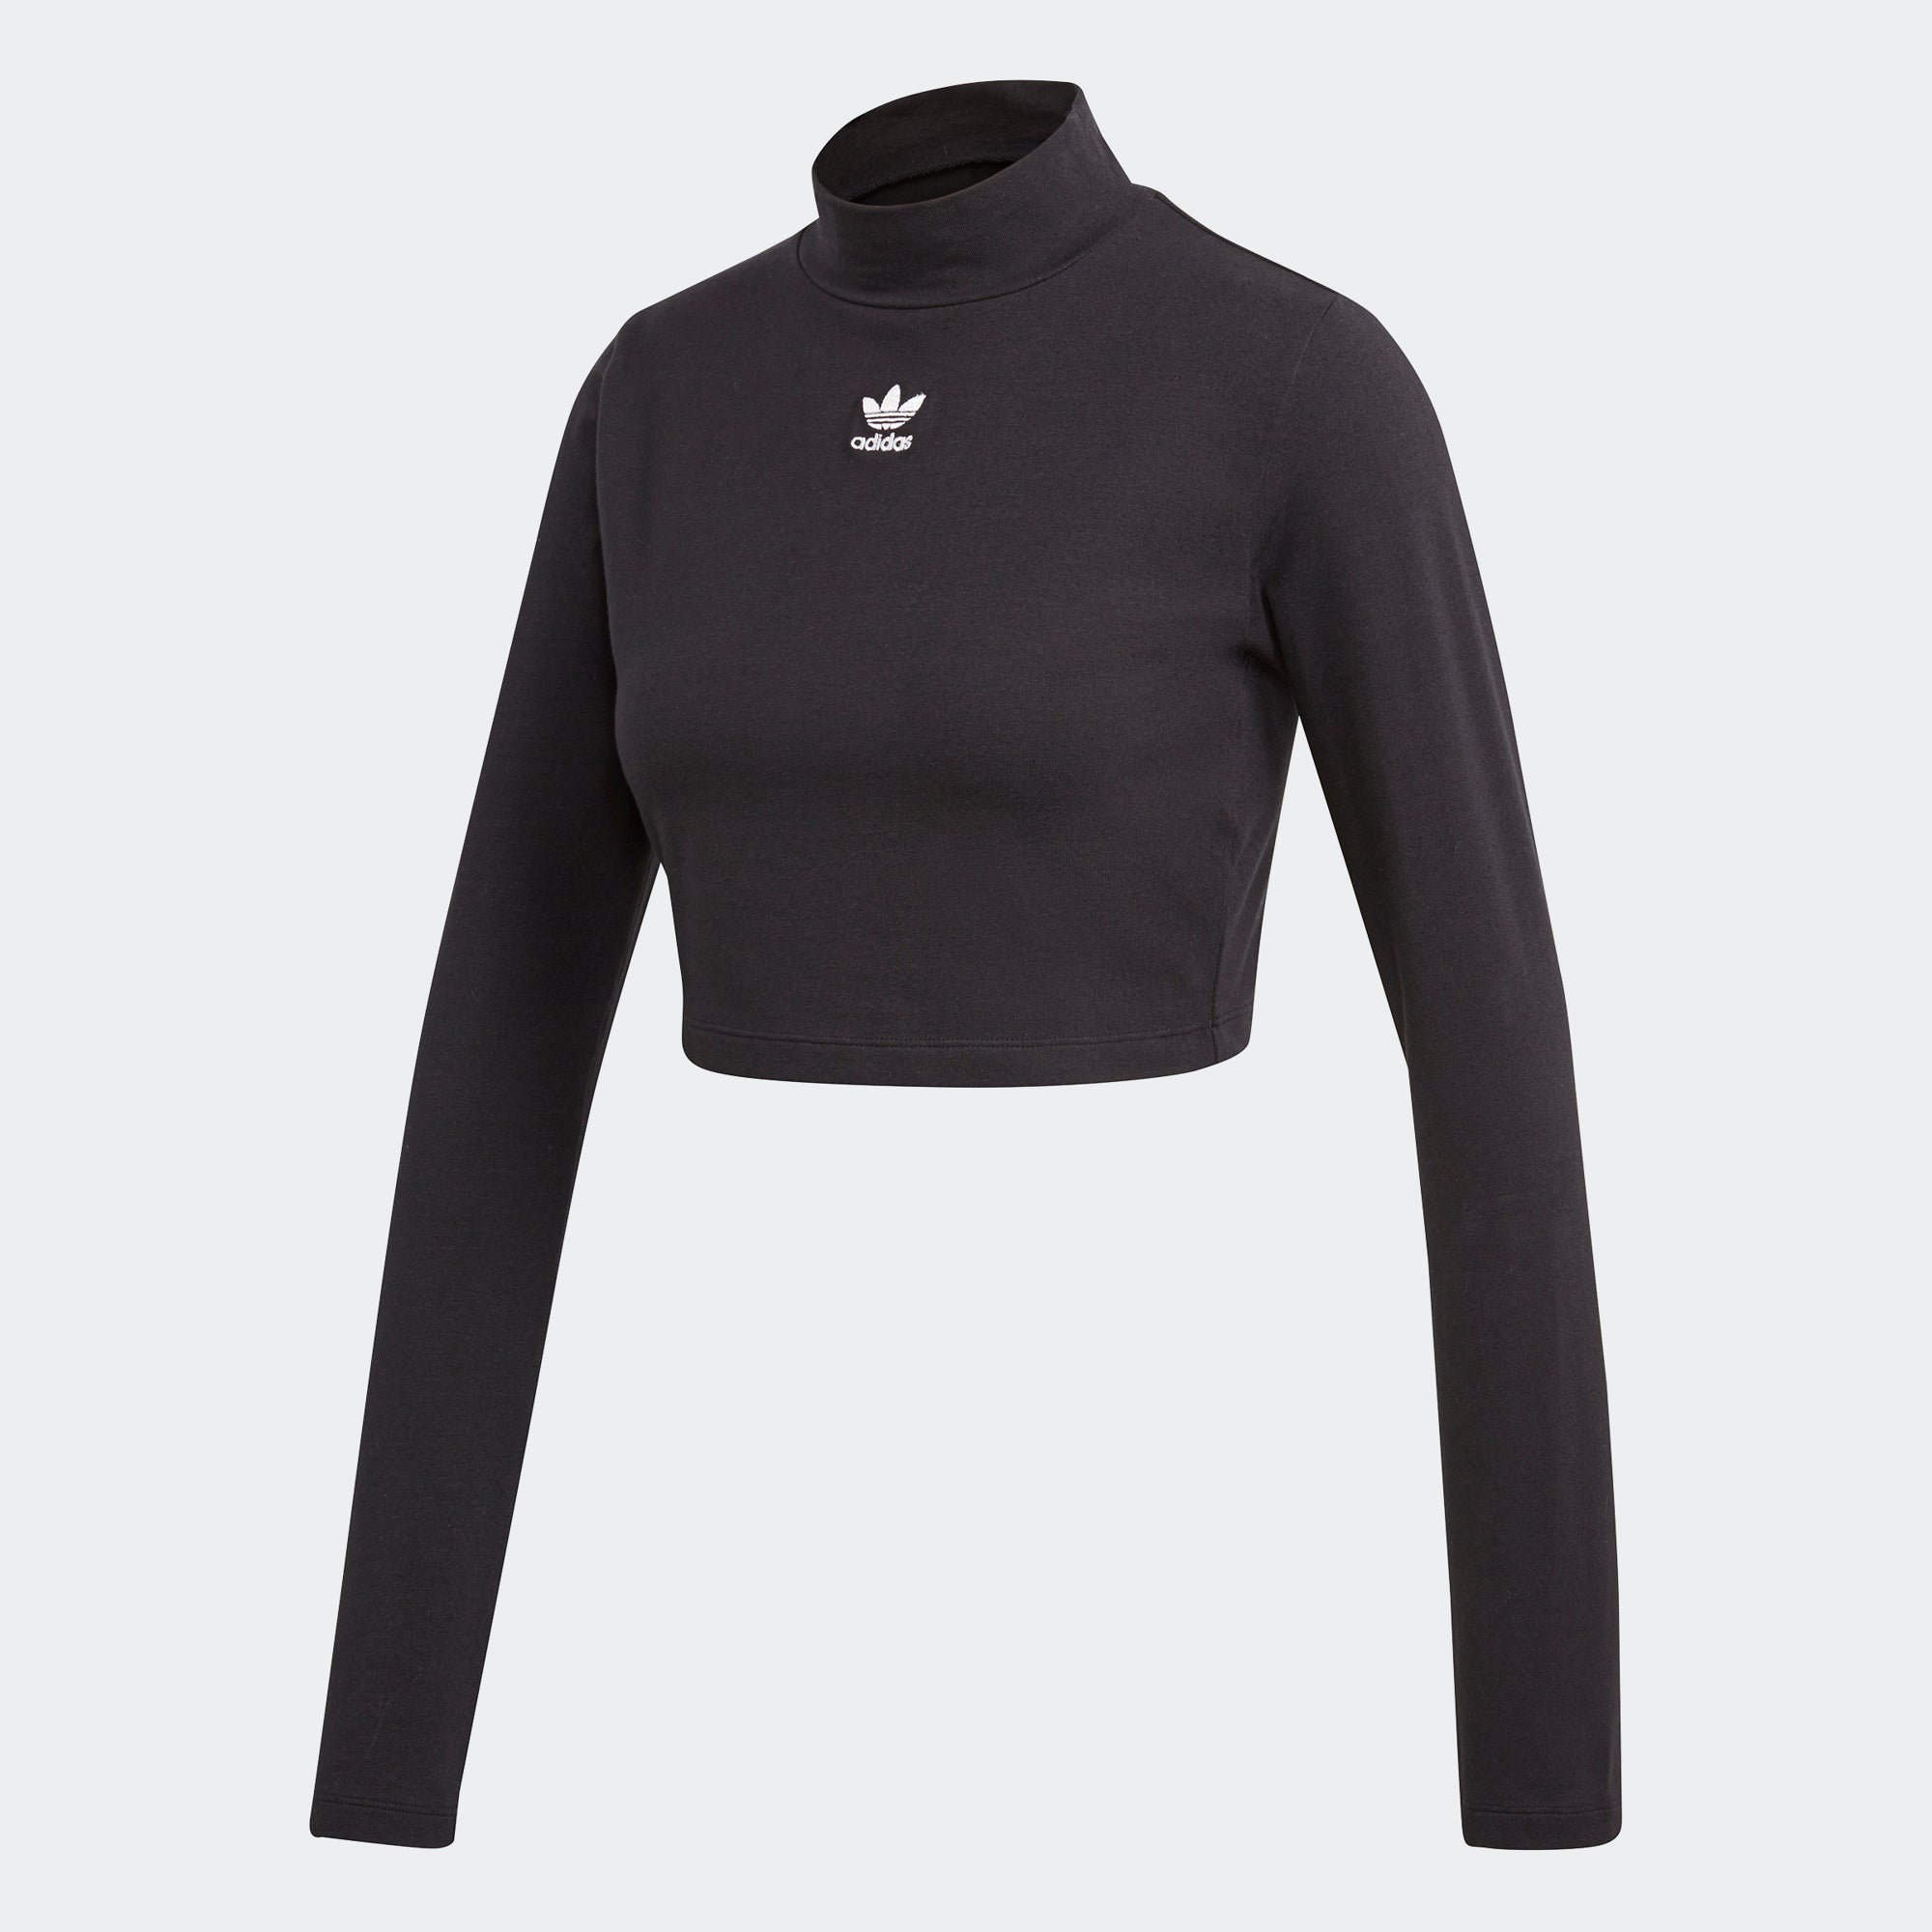 f9dd630a37af Women s adidas Originals SC Turtleneck Crop Top Black